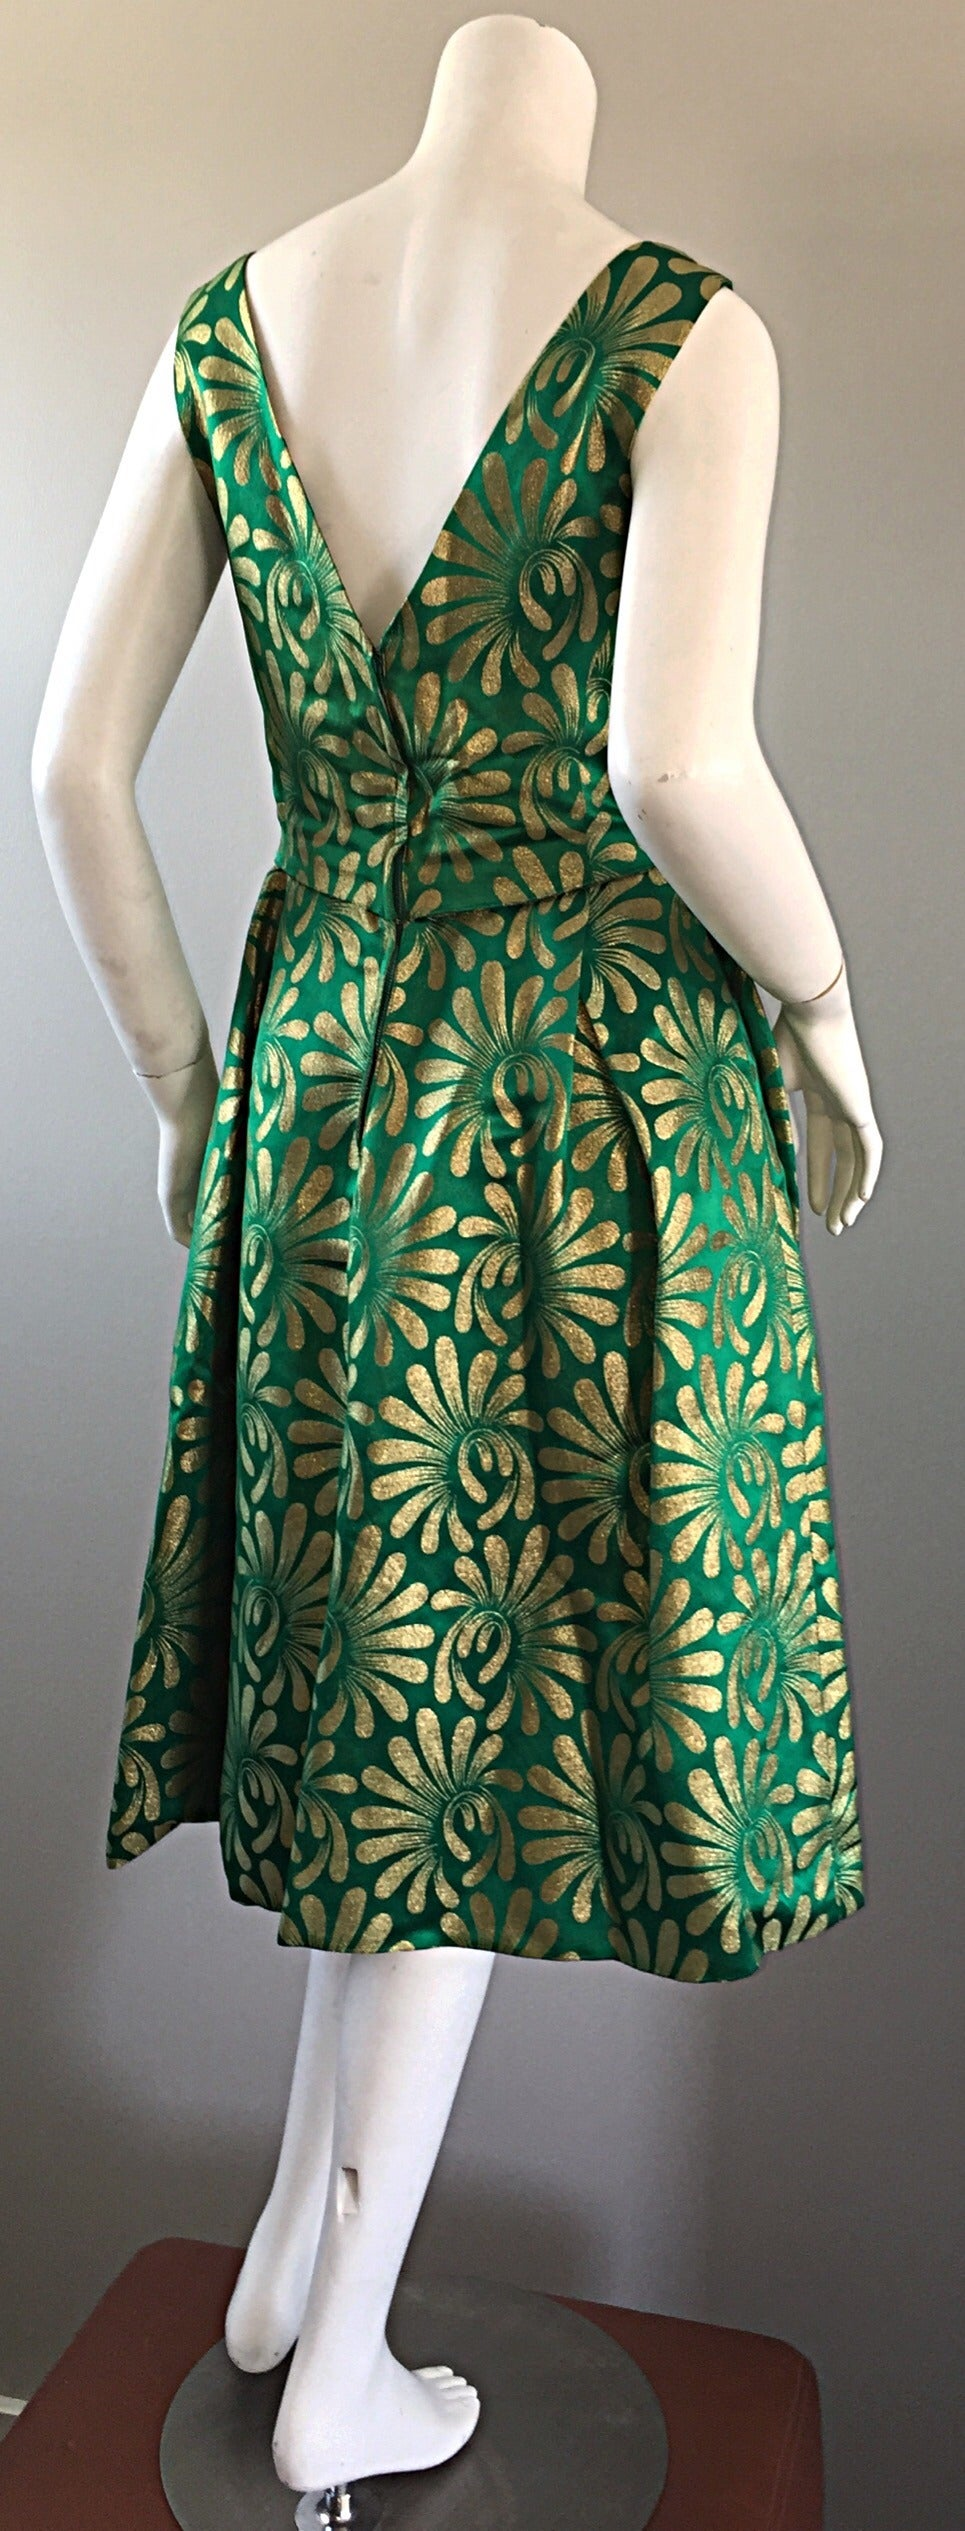 1950s 50s Vintage Blauner for Bonwit Teller Green + Gold ' New Look ' Silk Dress 3